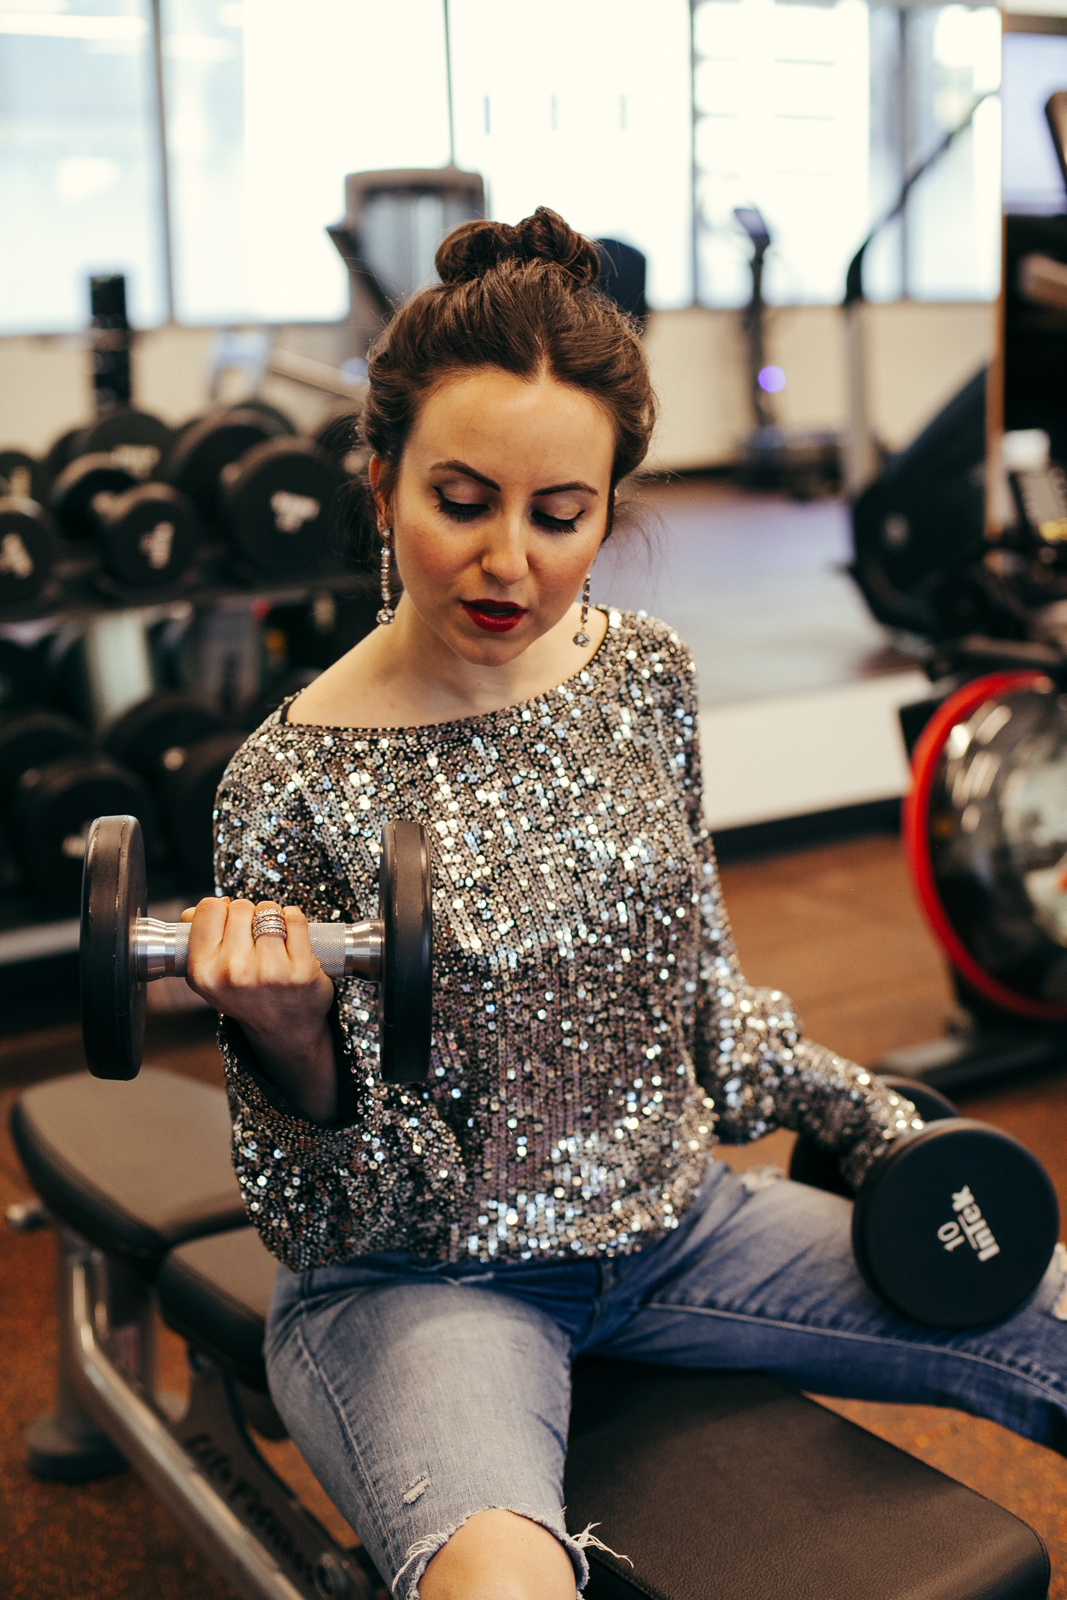 Yana Frigellis of NoMad Luxuries wearing a Trina Turk sequin top for a New Year Mantra in 2018